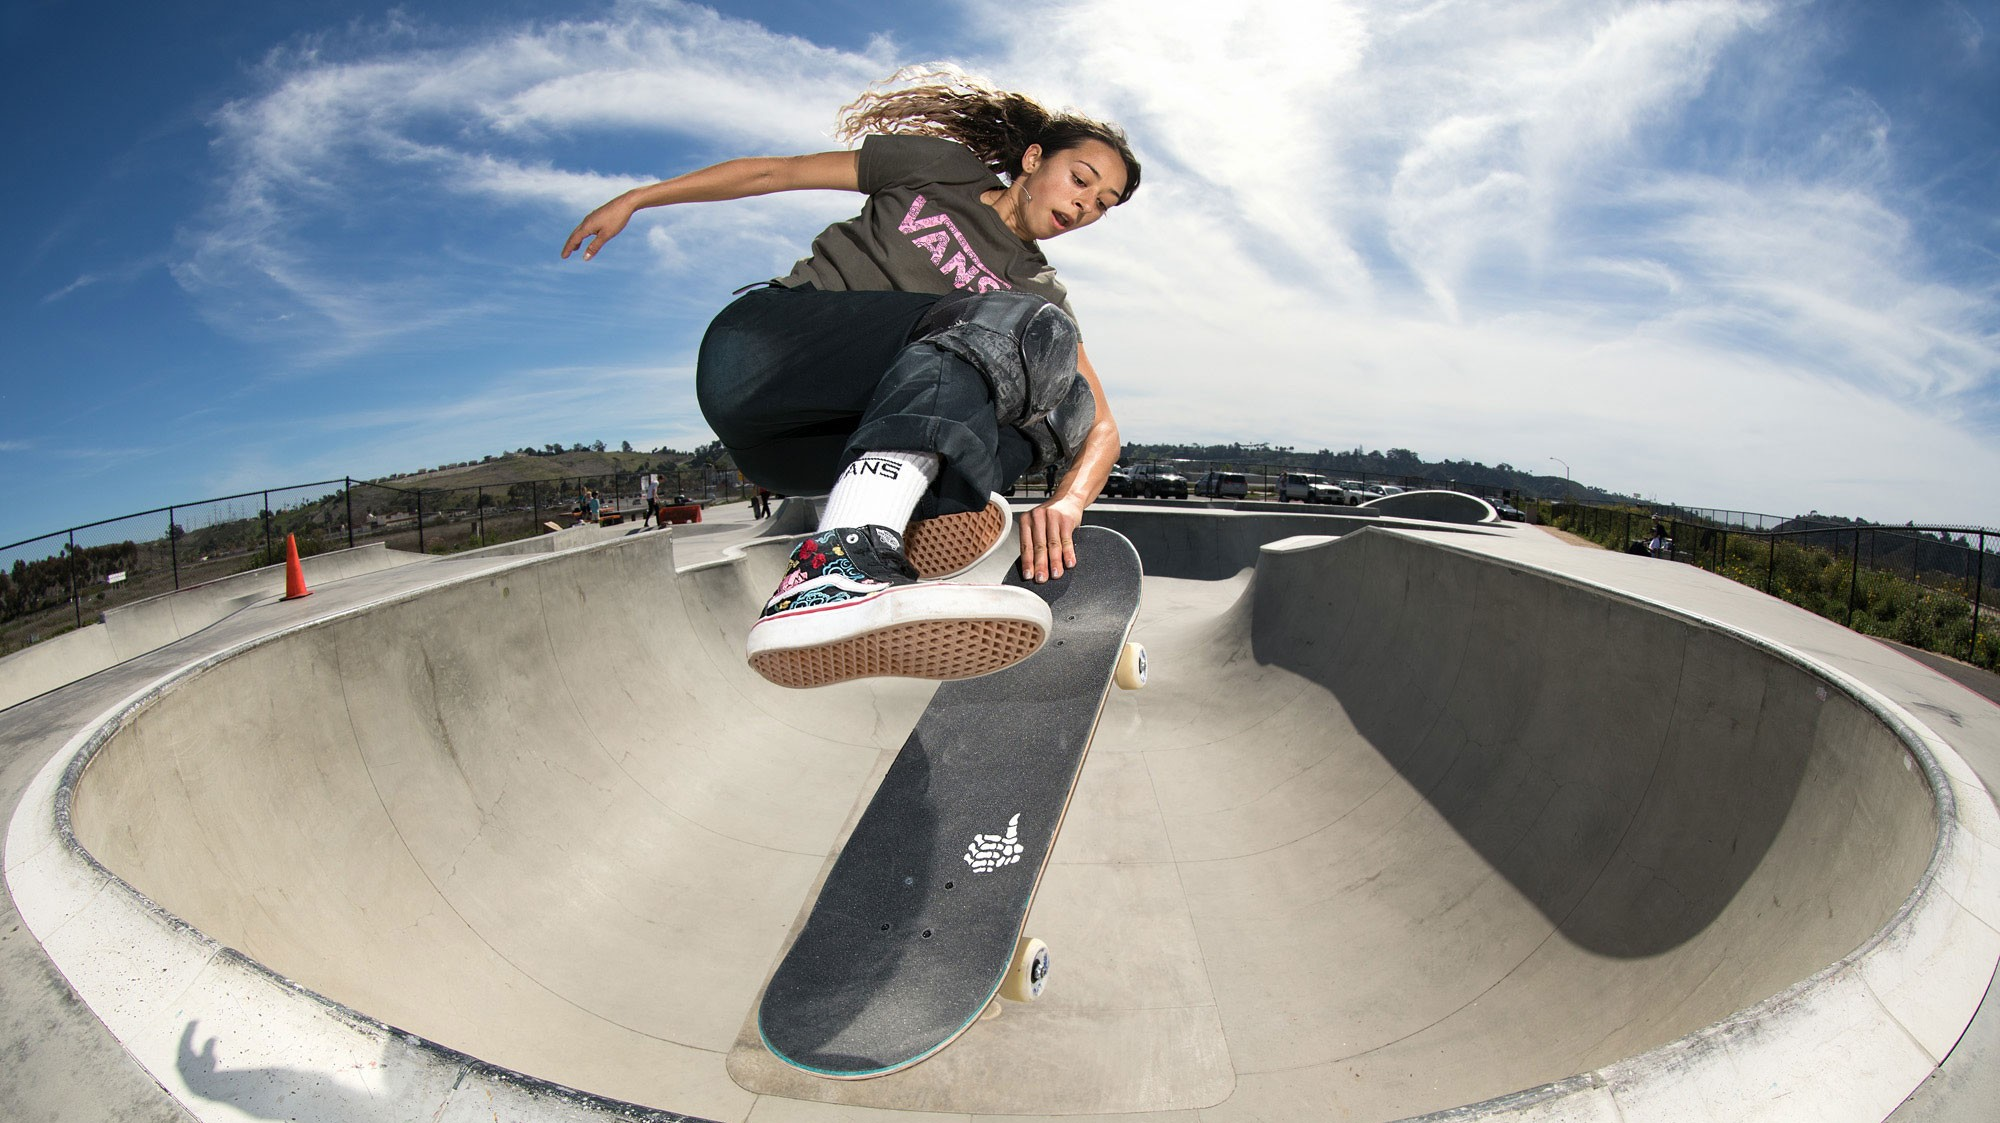 7 dope female skaters that are starting off 2019 right - i-D